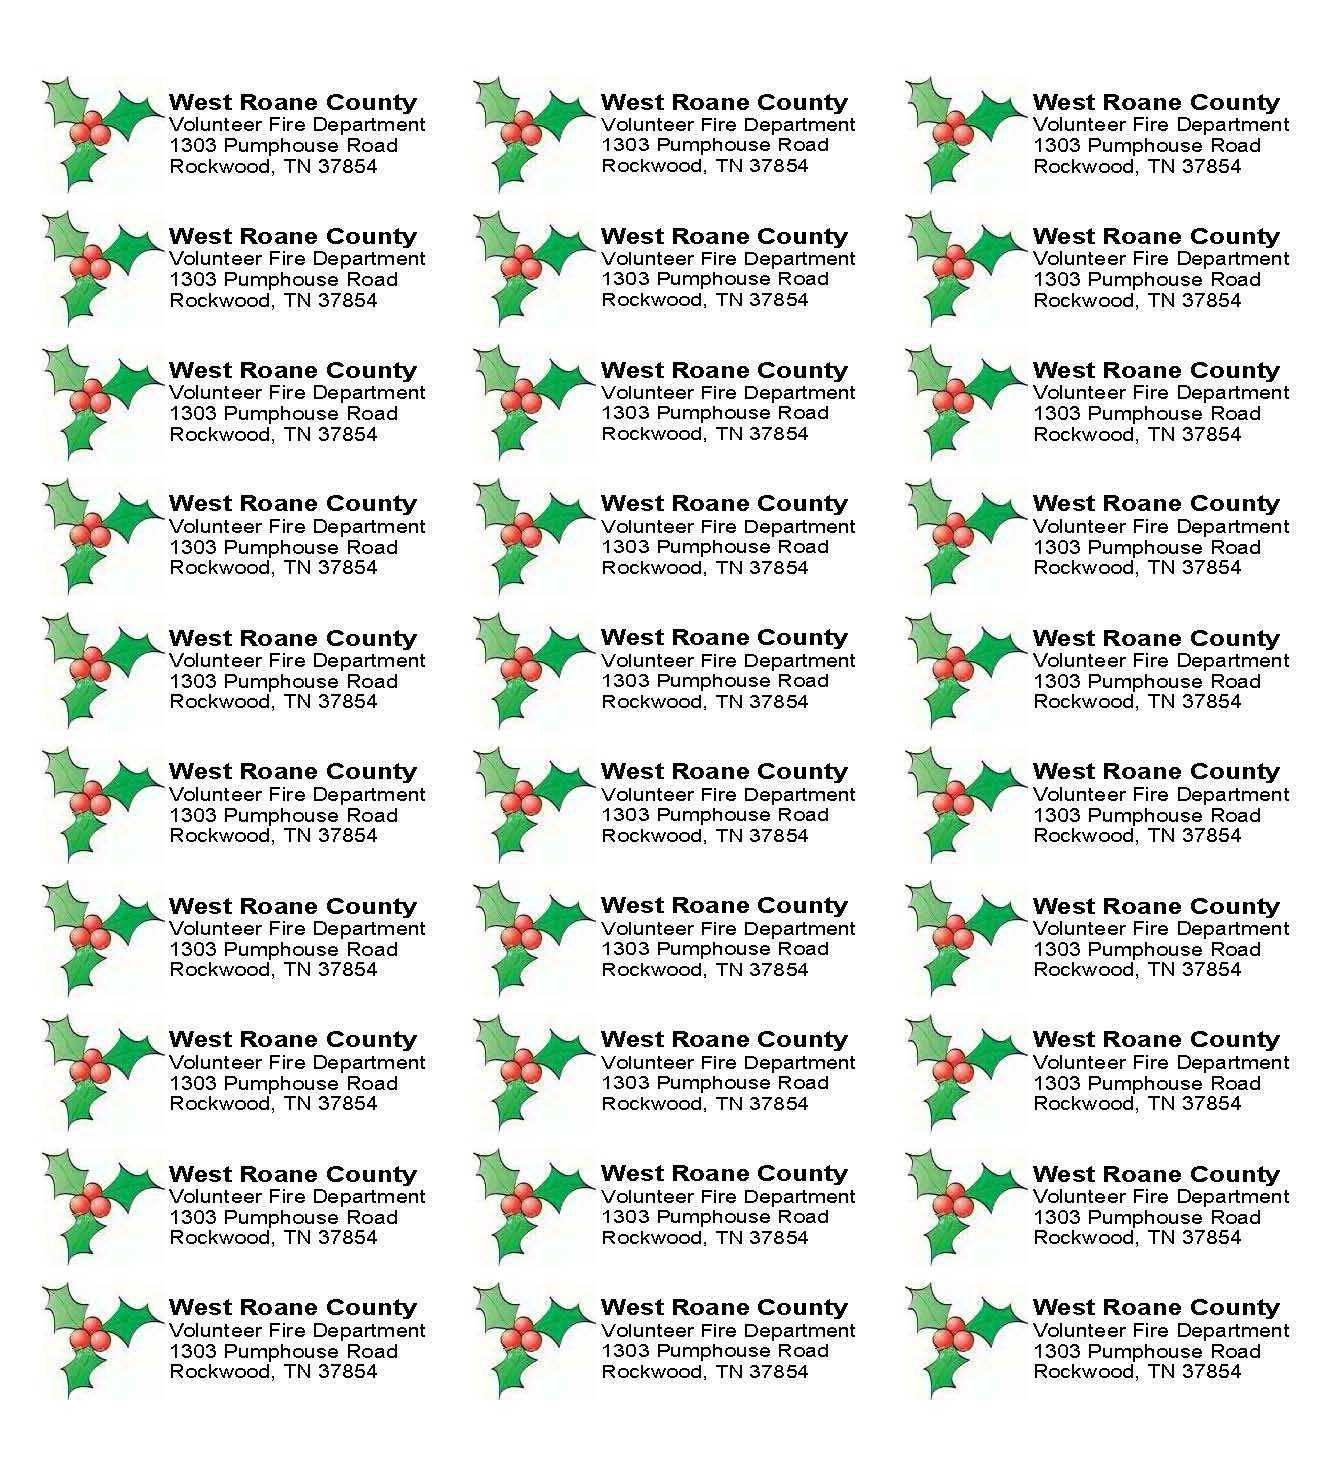 010 Free Holiday Address Labels Templates Per Sheet Label Template - Free Printable Christmas Address Labels Avery 5160